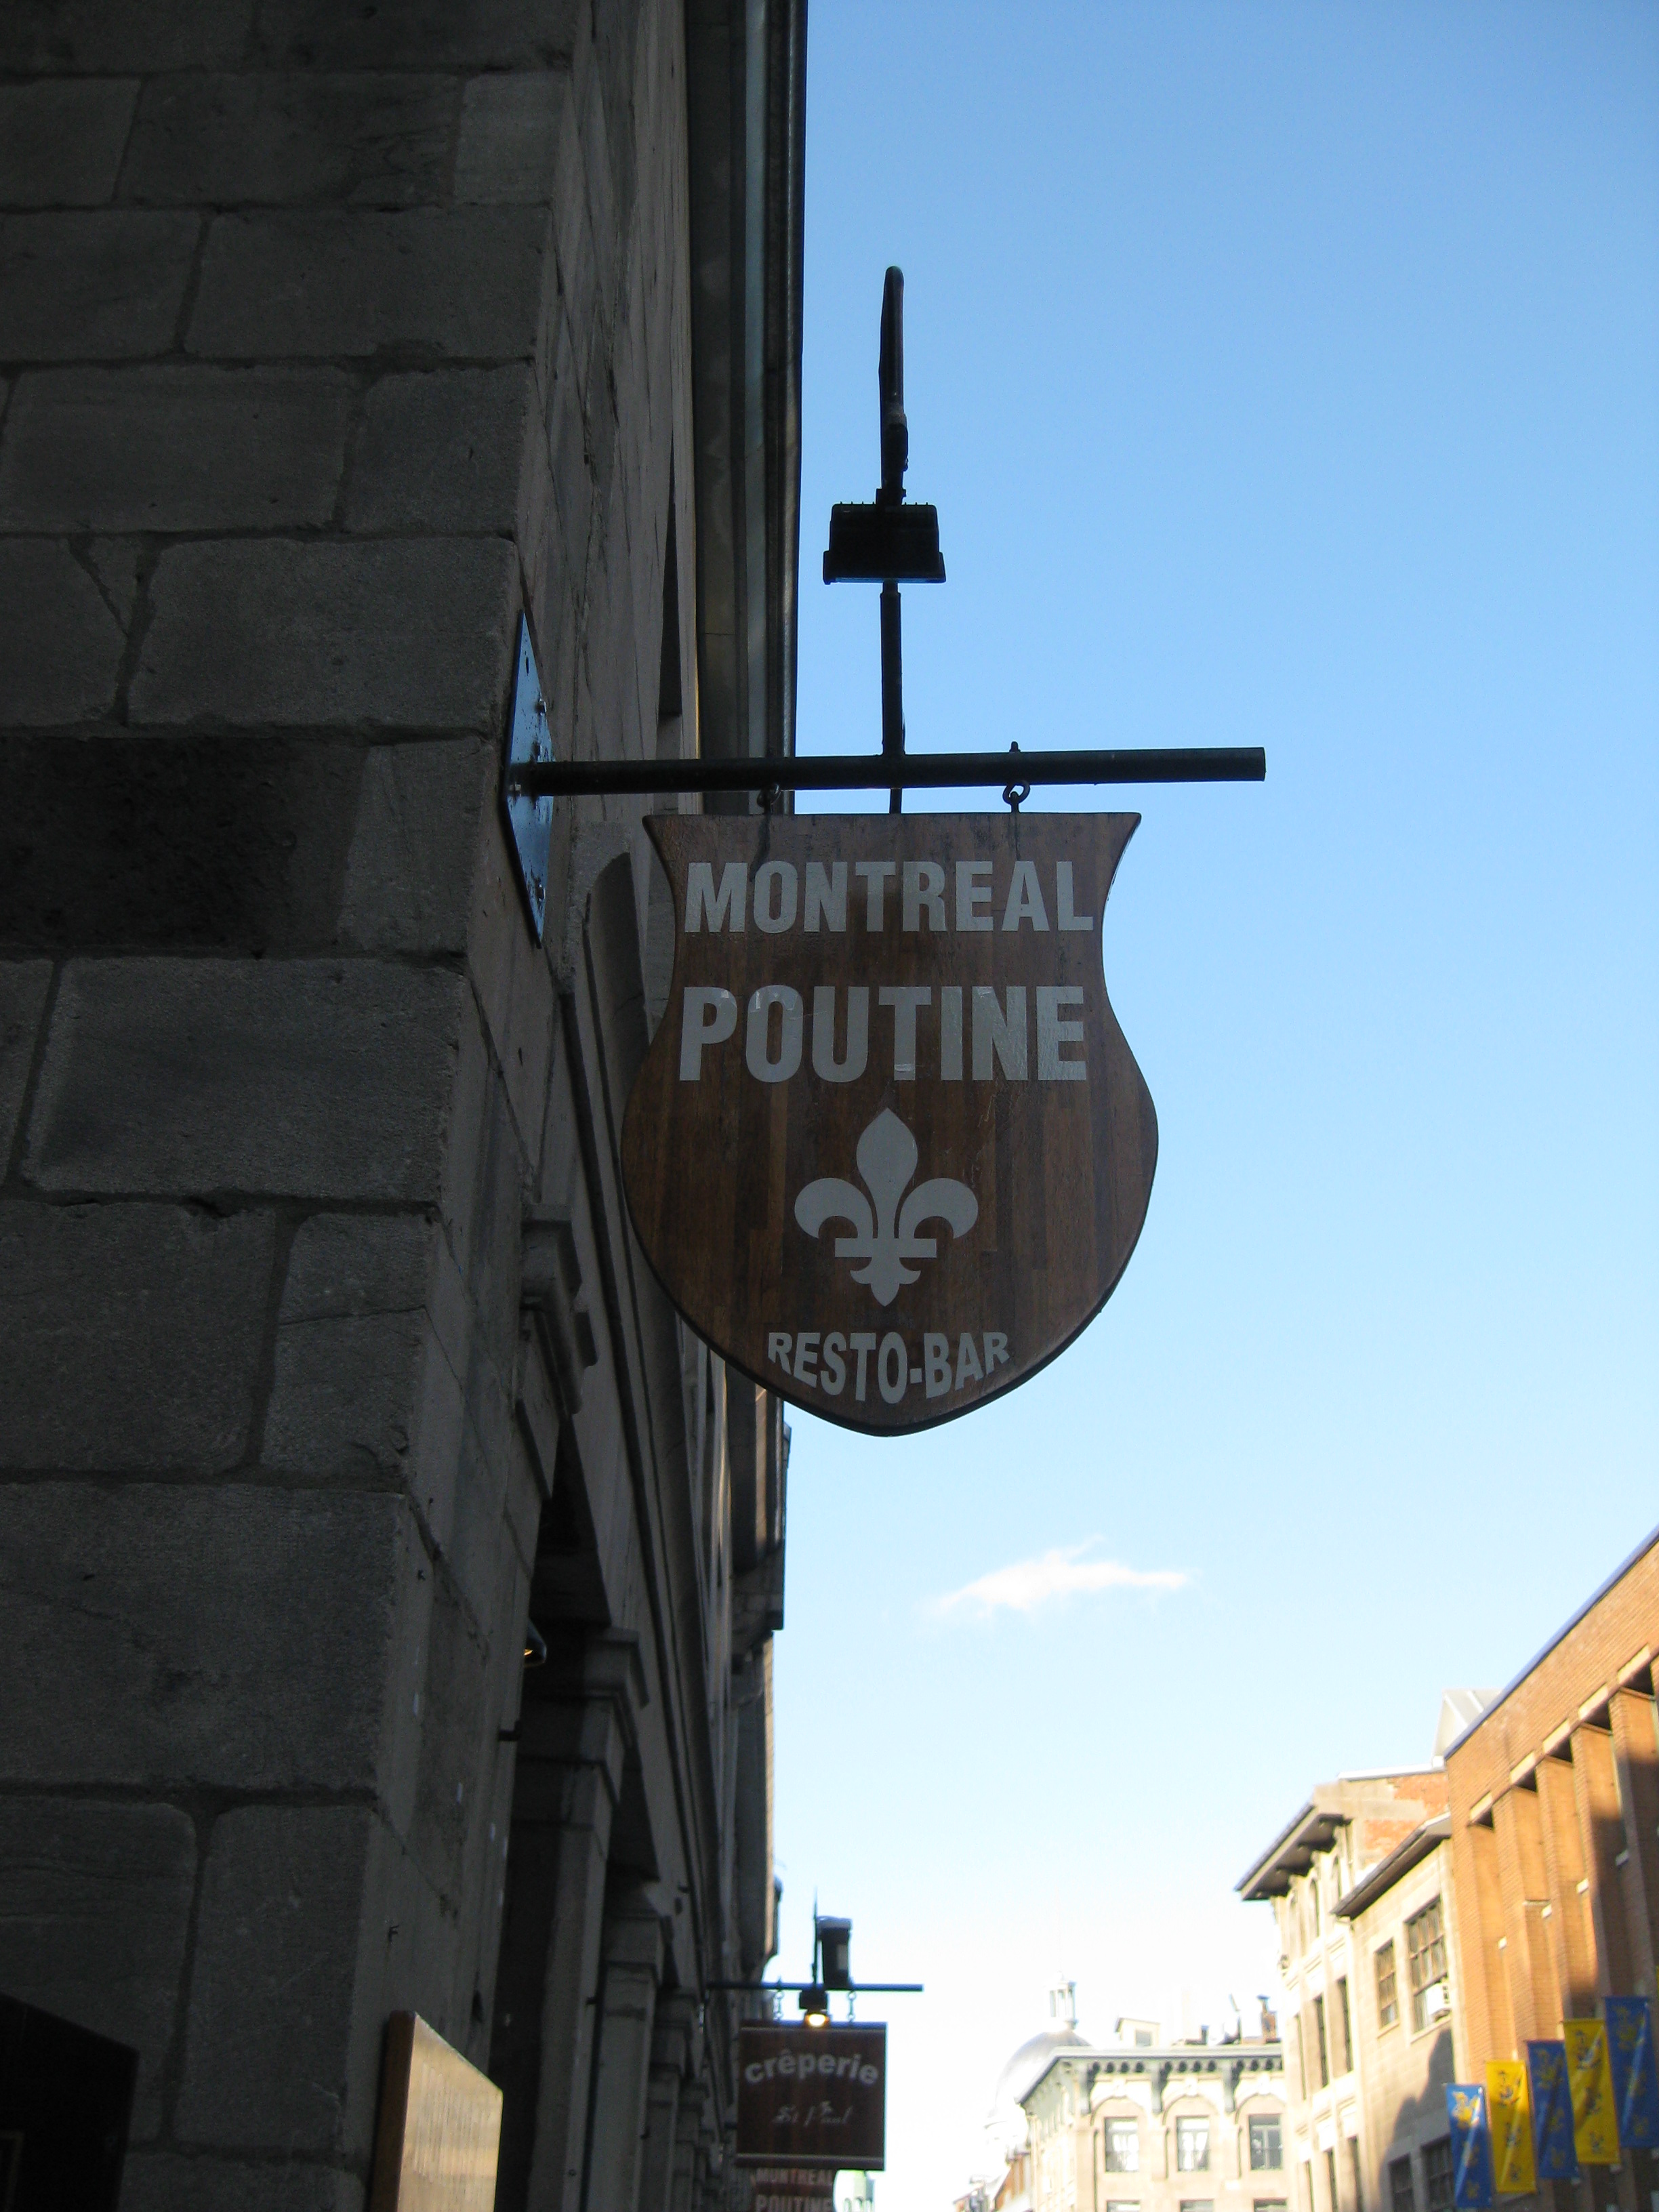 Signage - Montreal Poutine